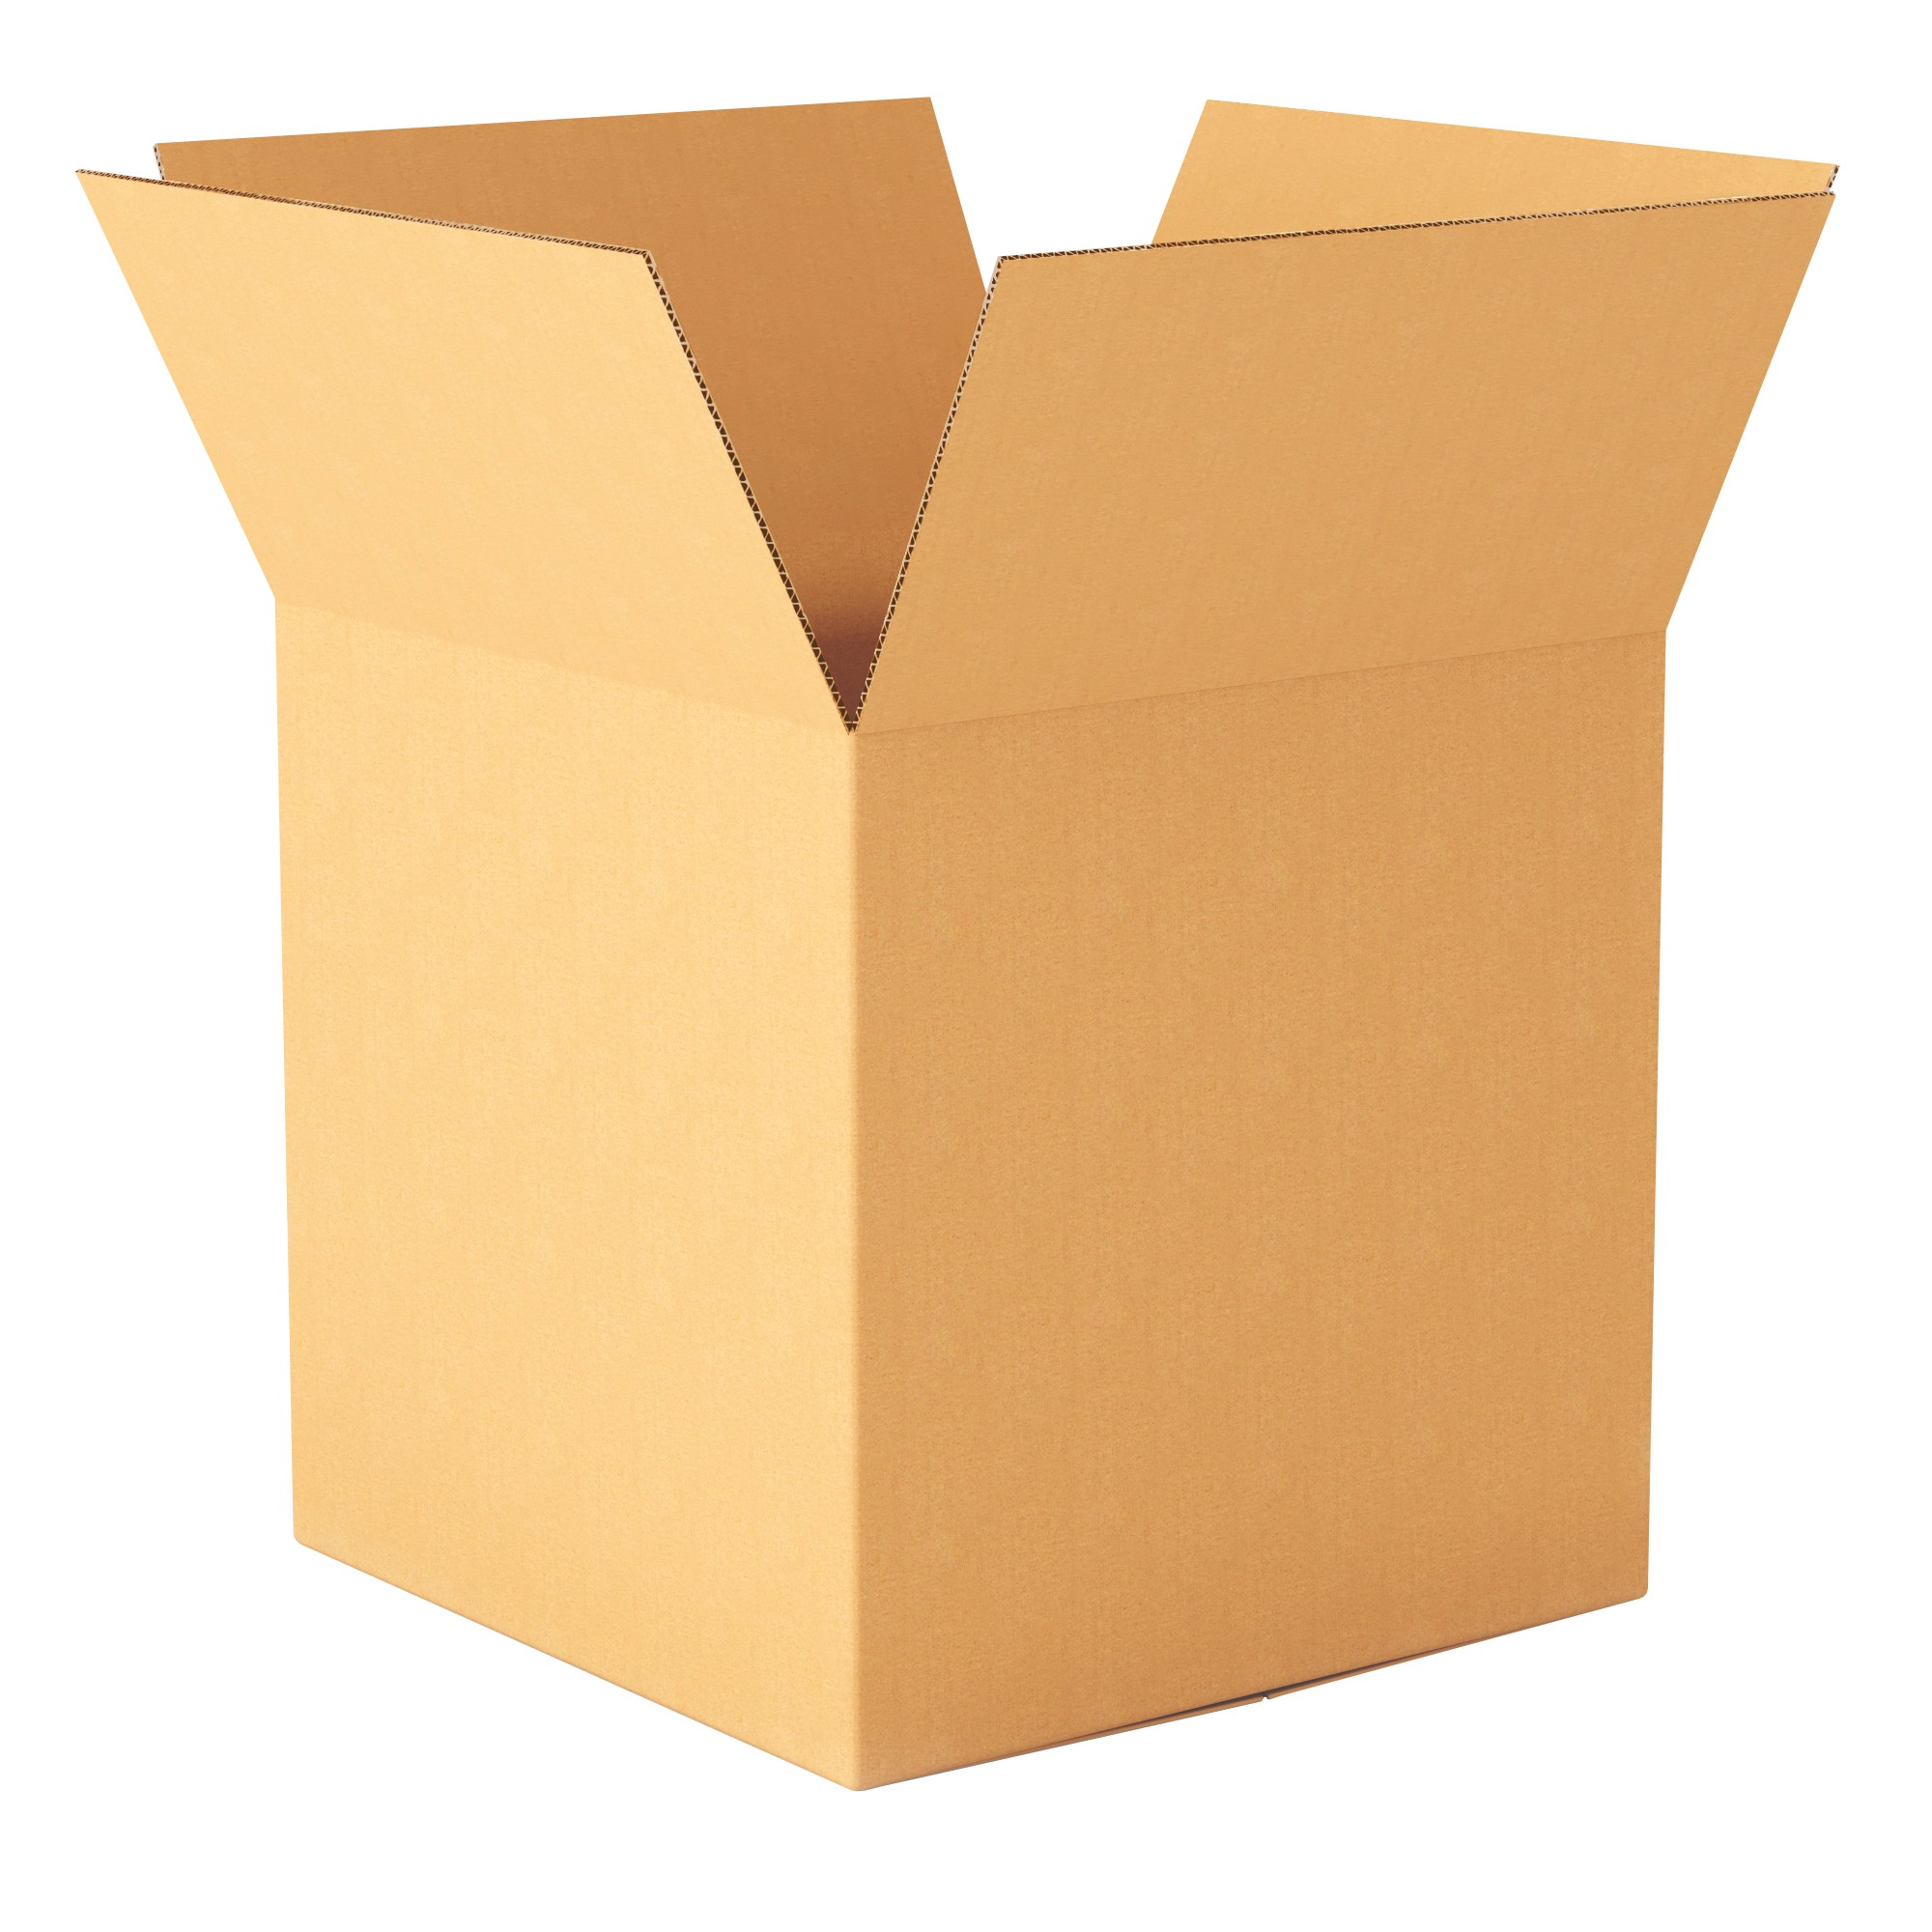 """TOTALPACK® 6 x 6 x 6"""" Single Wall Corrugated Boxes 25 Units"""